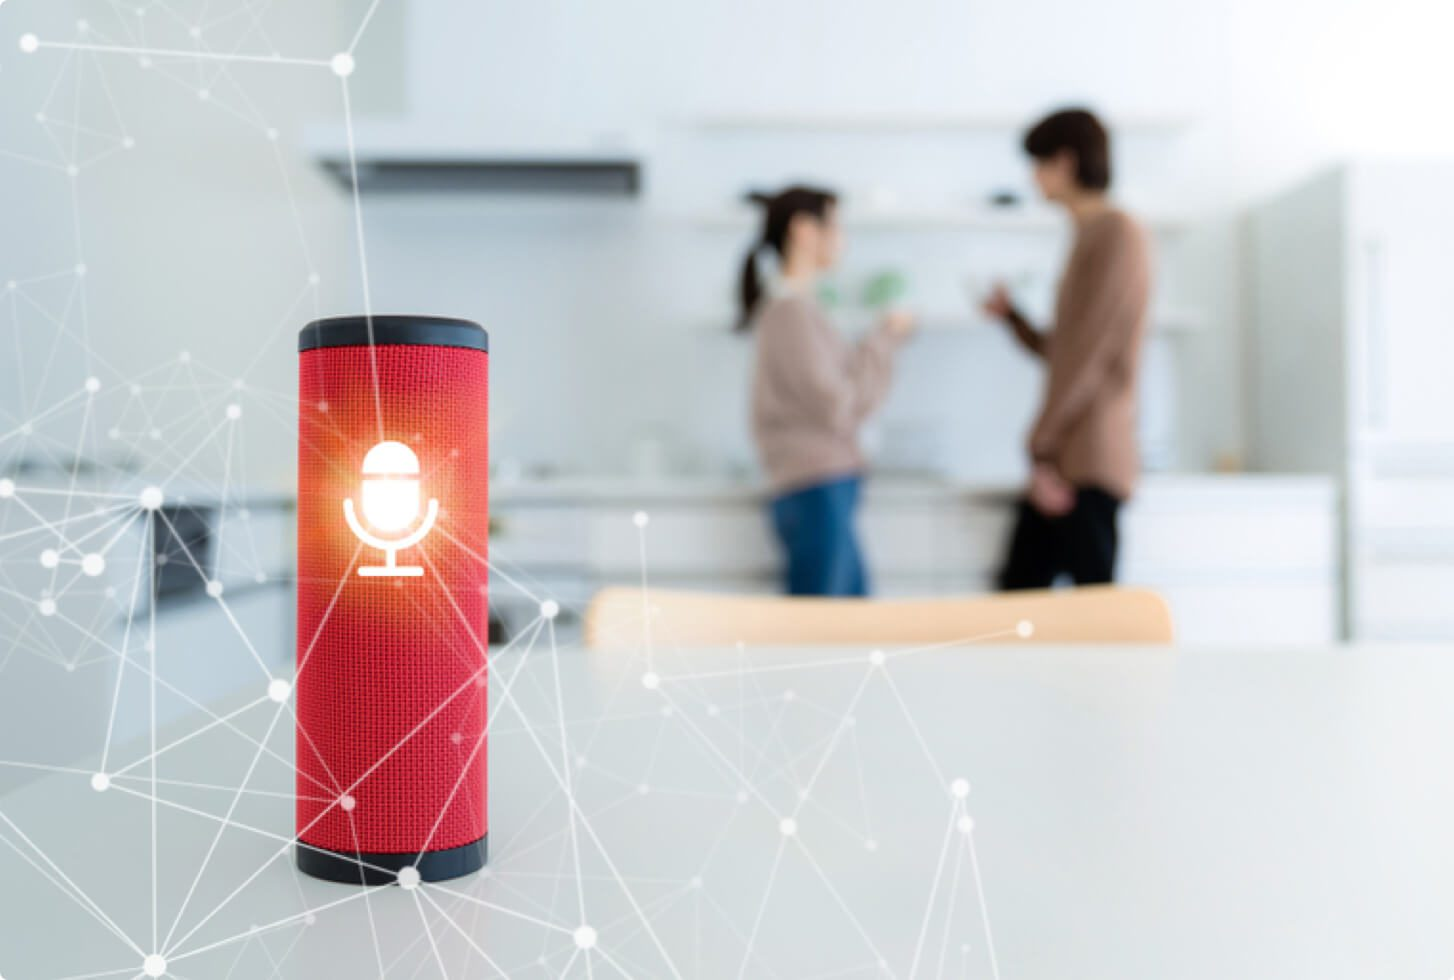 A red smart speaker shown in a kitchen with two people in the background